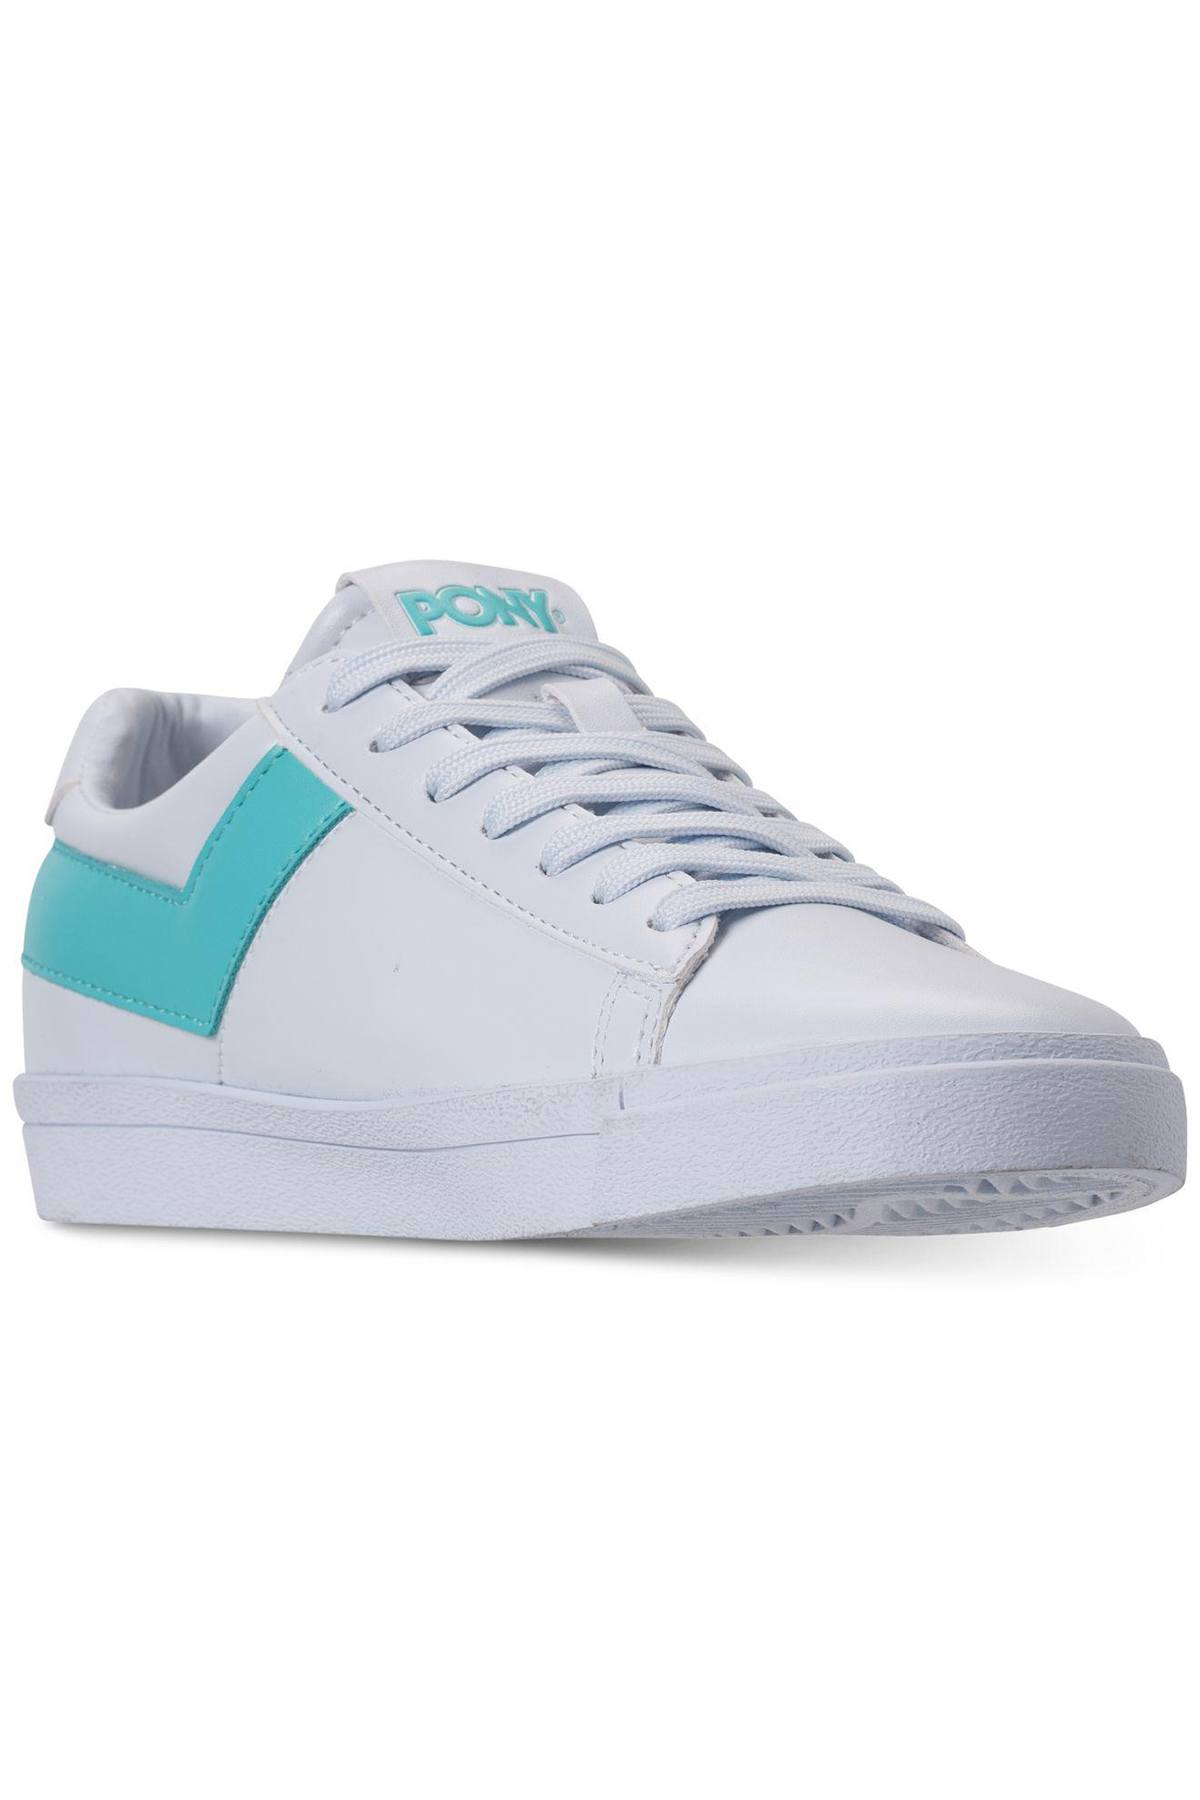 Pony White/Aqua Top-Star Lo Core Sneakers